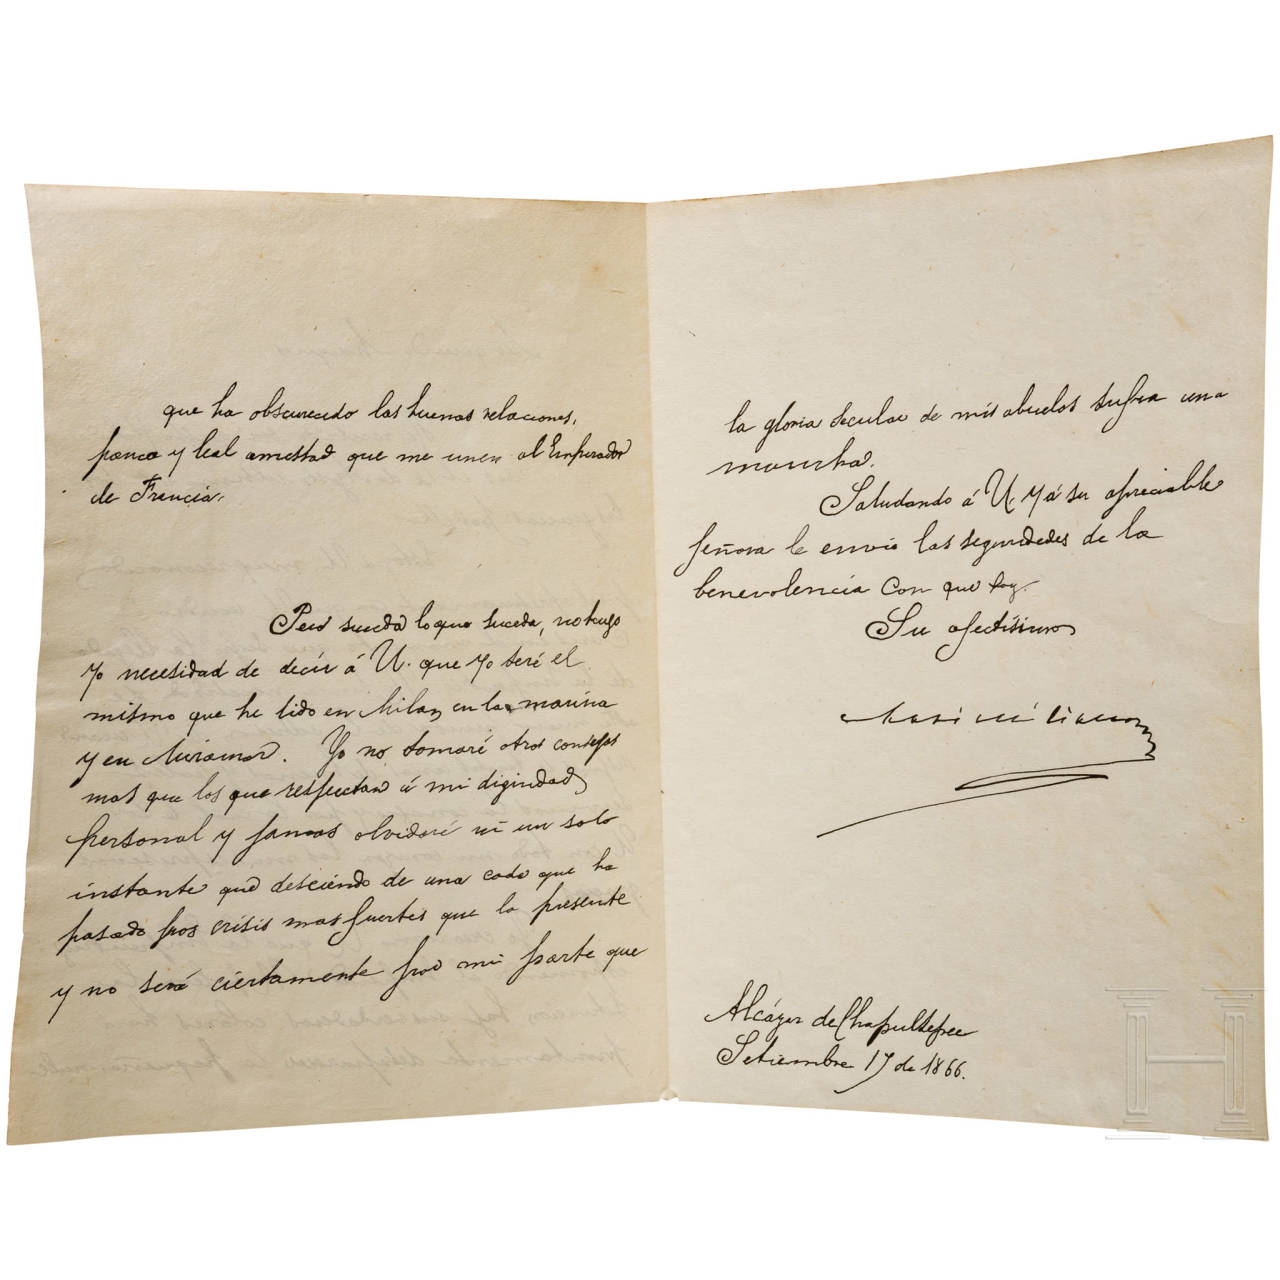 Emperor Maximilian I of Mexico (1832-67) - a letter dated 19 September 1866, written and signed in his own hand